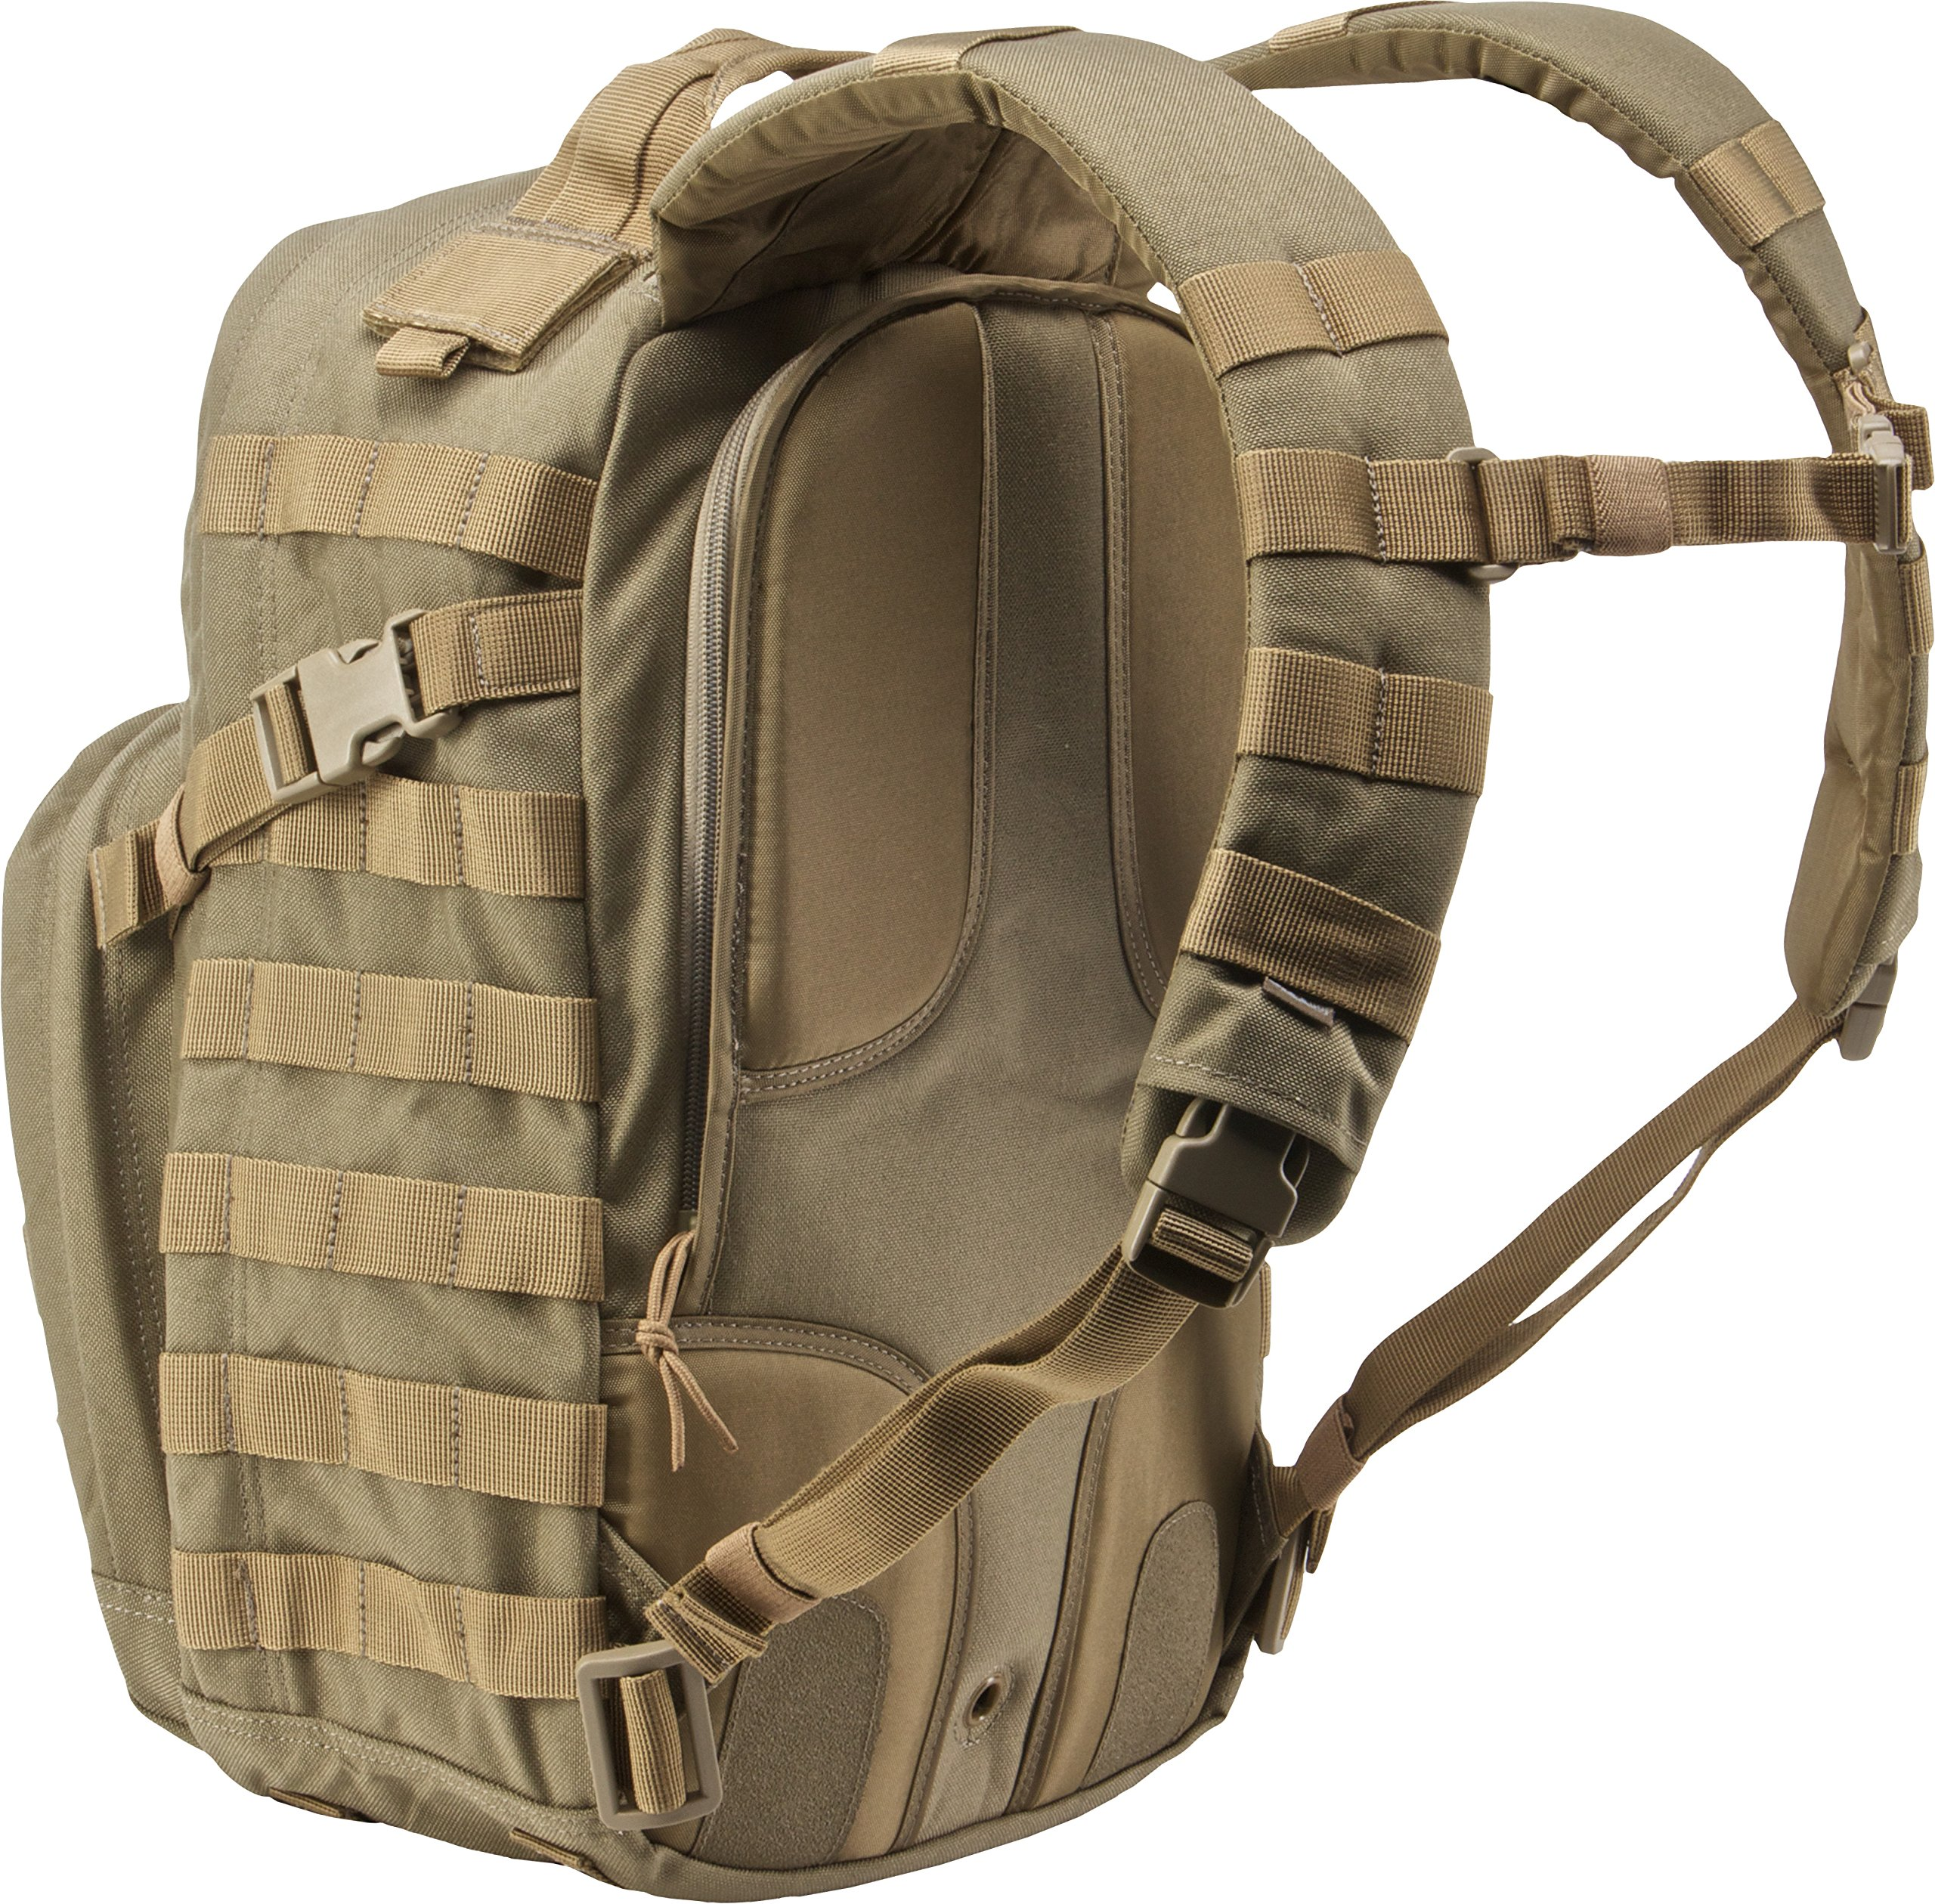 5.11 RUSH12 Tactical Military Assault Molle Backpack, Bug Out Rucksack Bag, Small, Style 56892, Sandstone by 5.11 (Image #2)